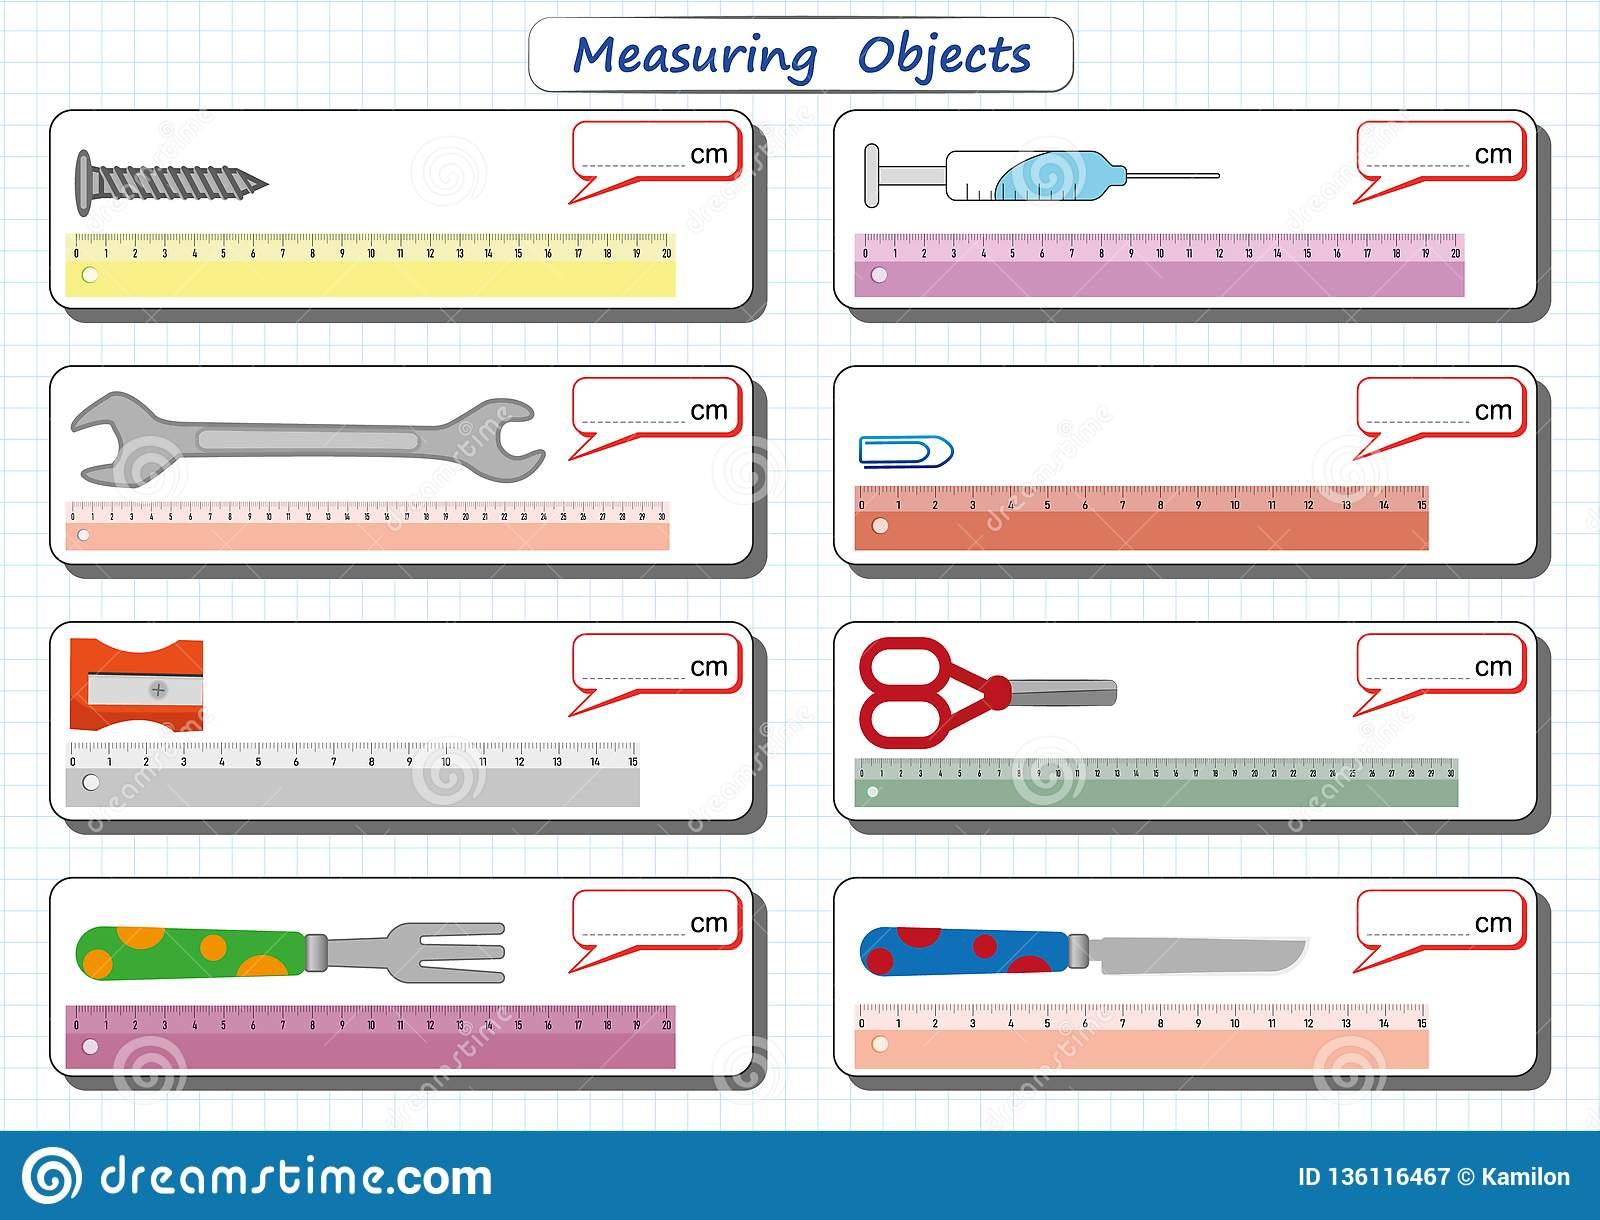 Measuring With Centimeter Ruler Worksheet